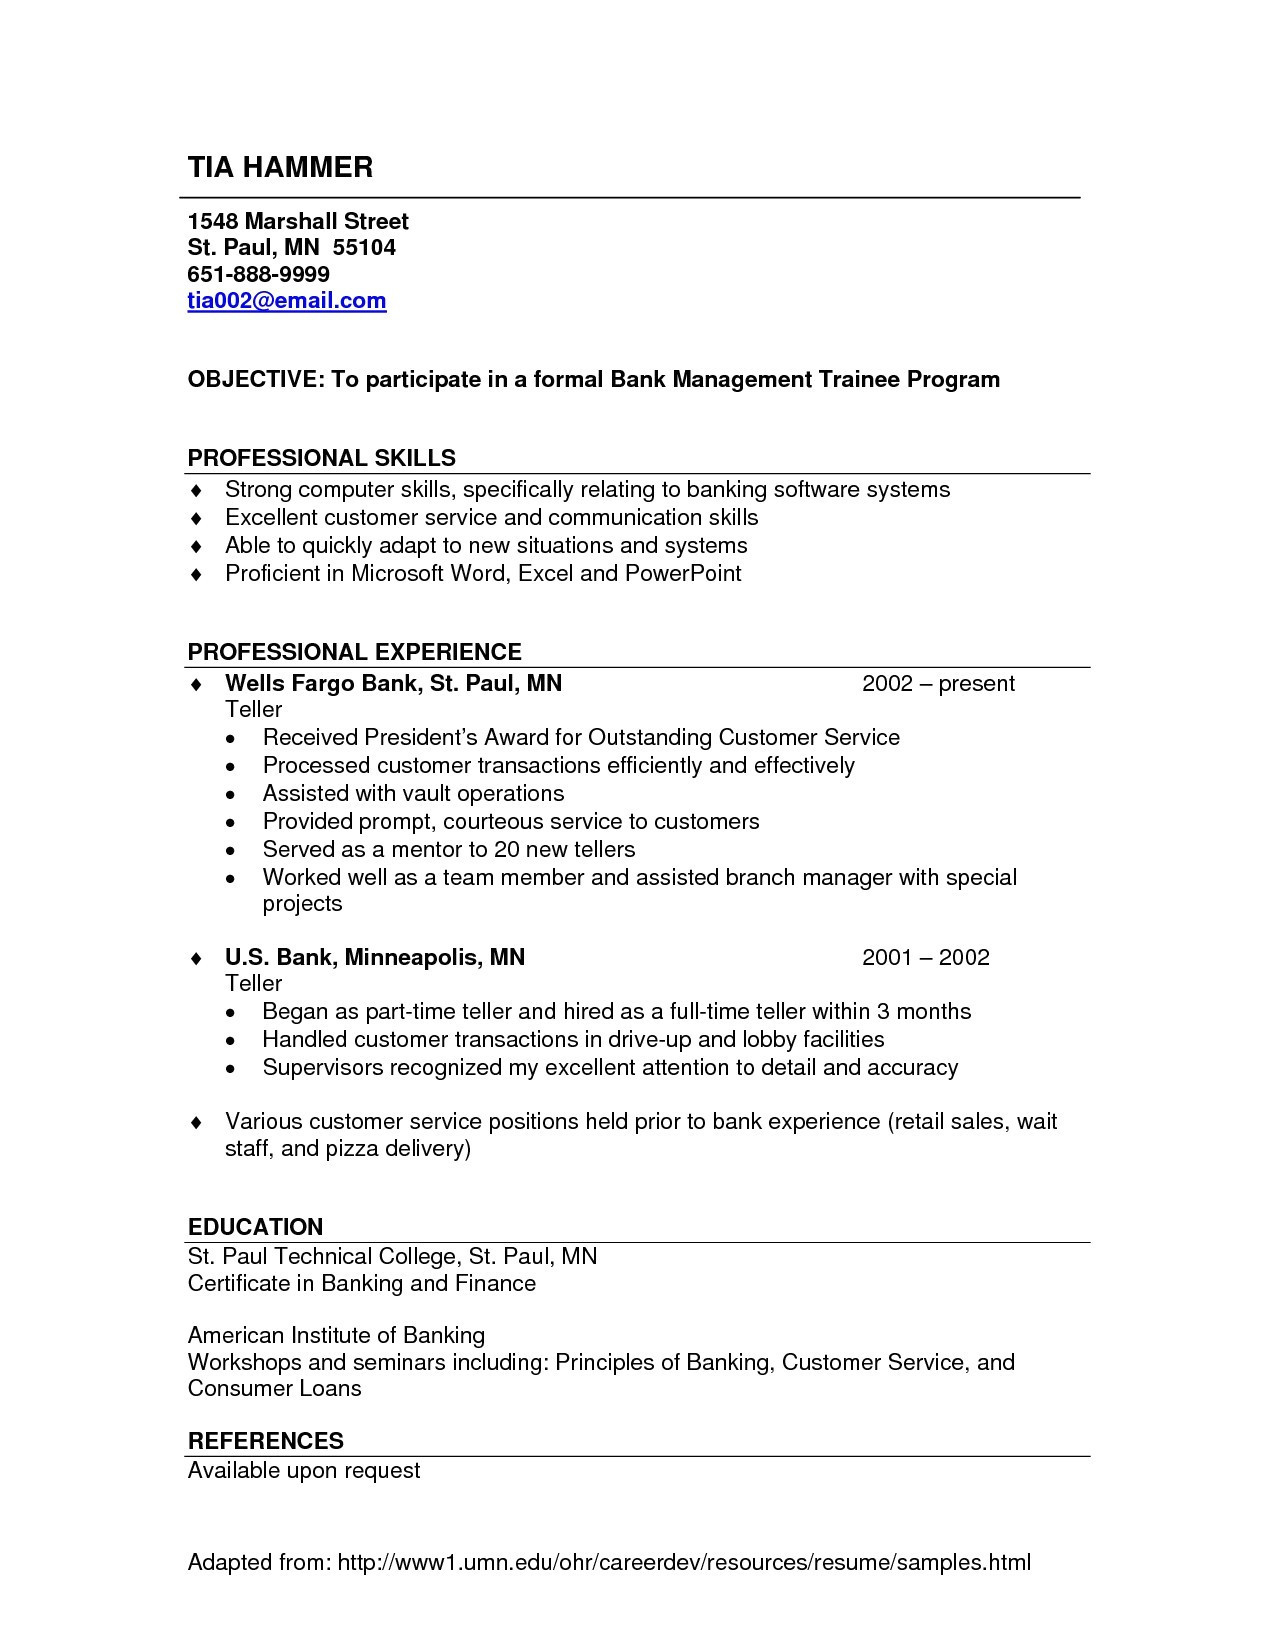 Examples Of Supervisor Resumes - Apa Resume Template New Examples A Resume Fresh Resume Examples 0d